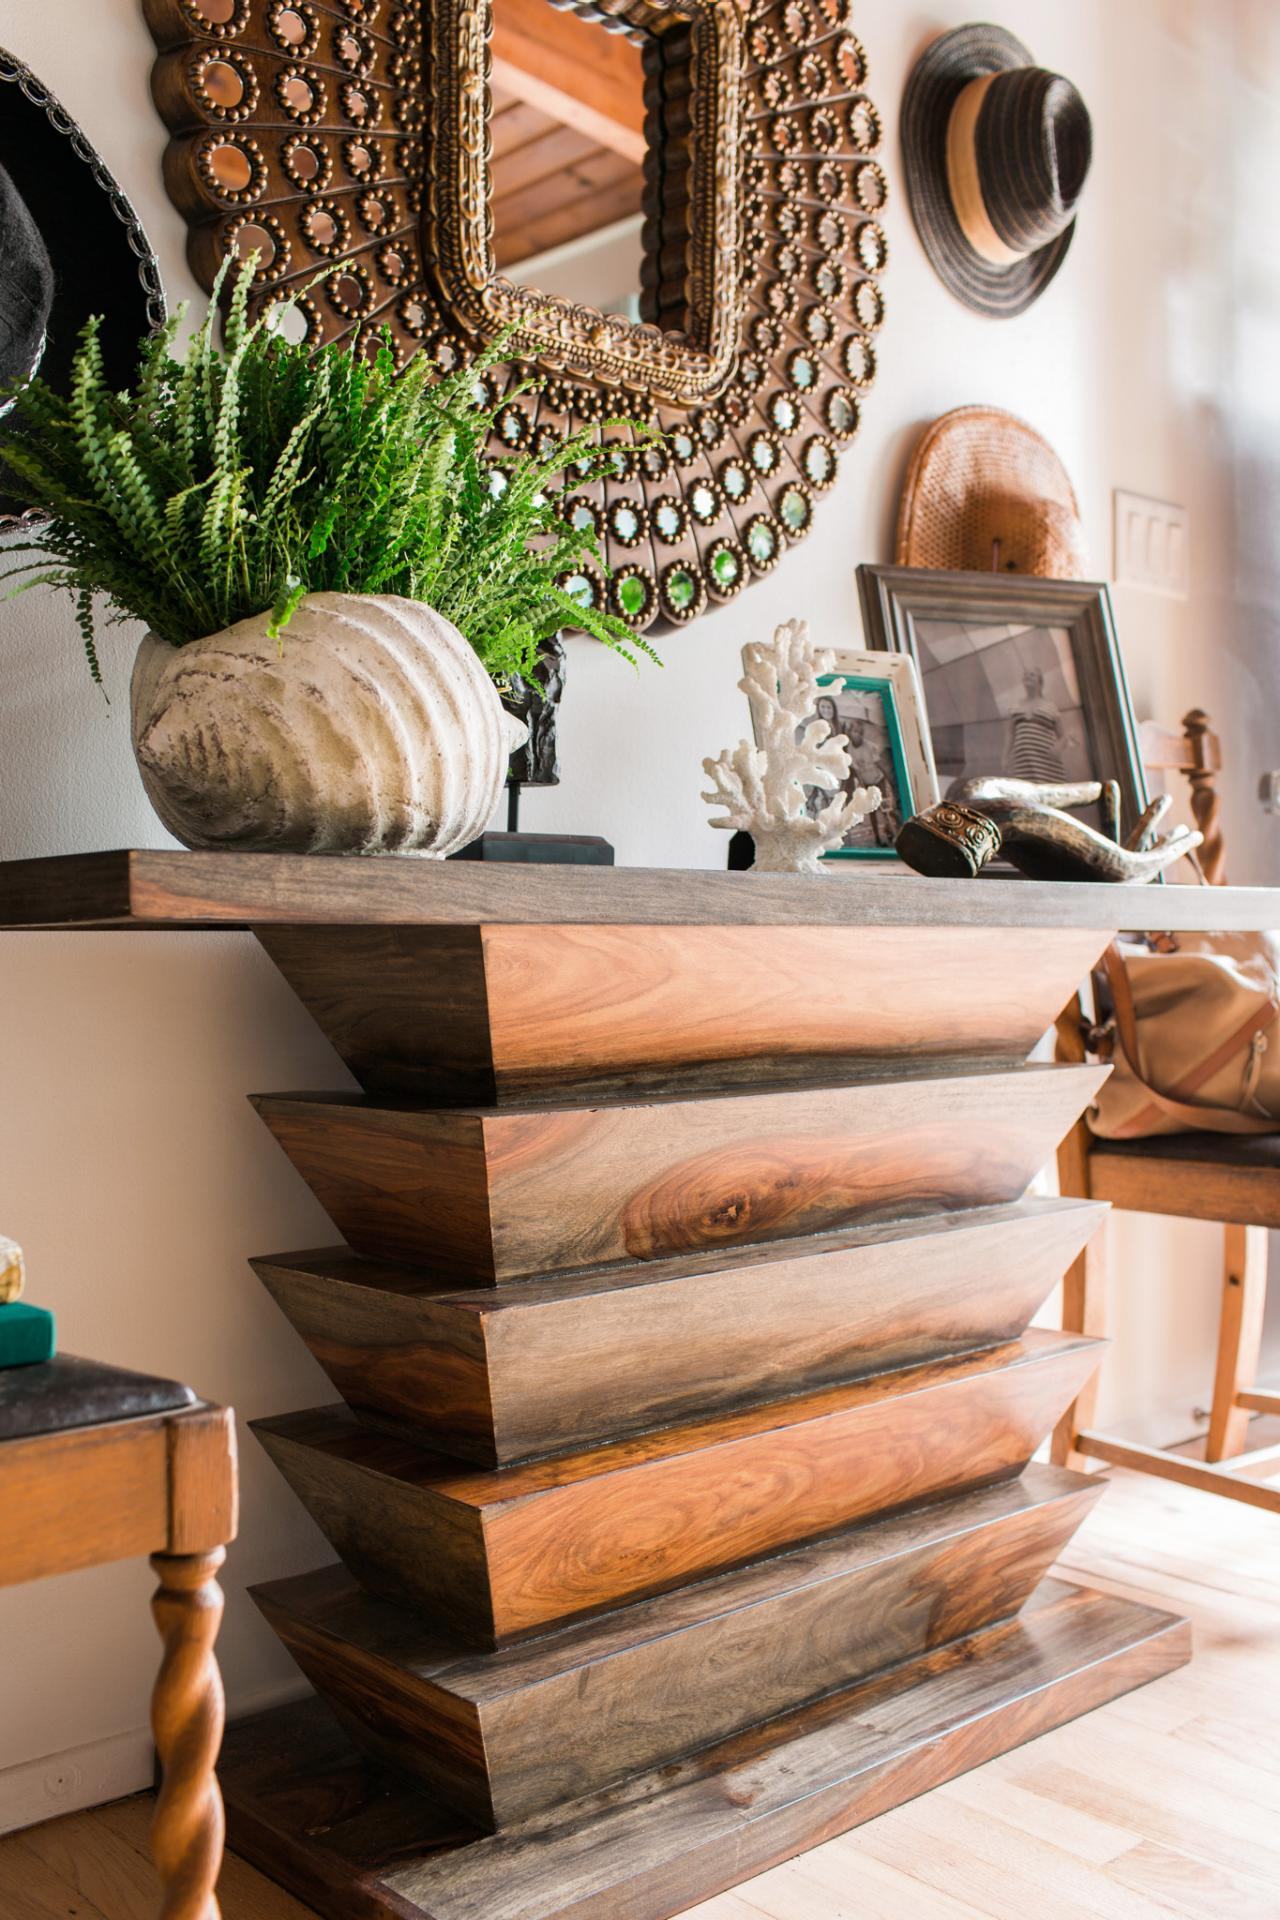 how to clean a wood kitchen table: hgtv pictures & ideas | hgtv